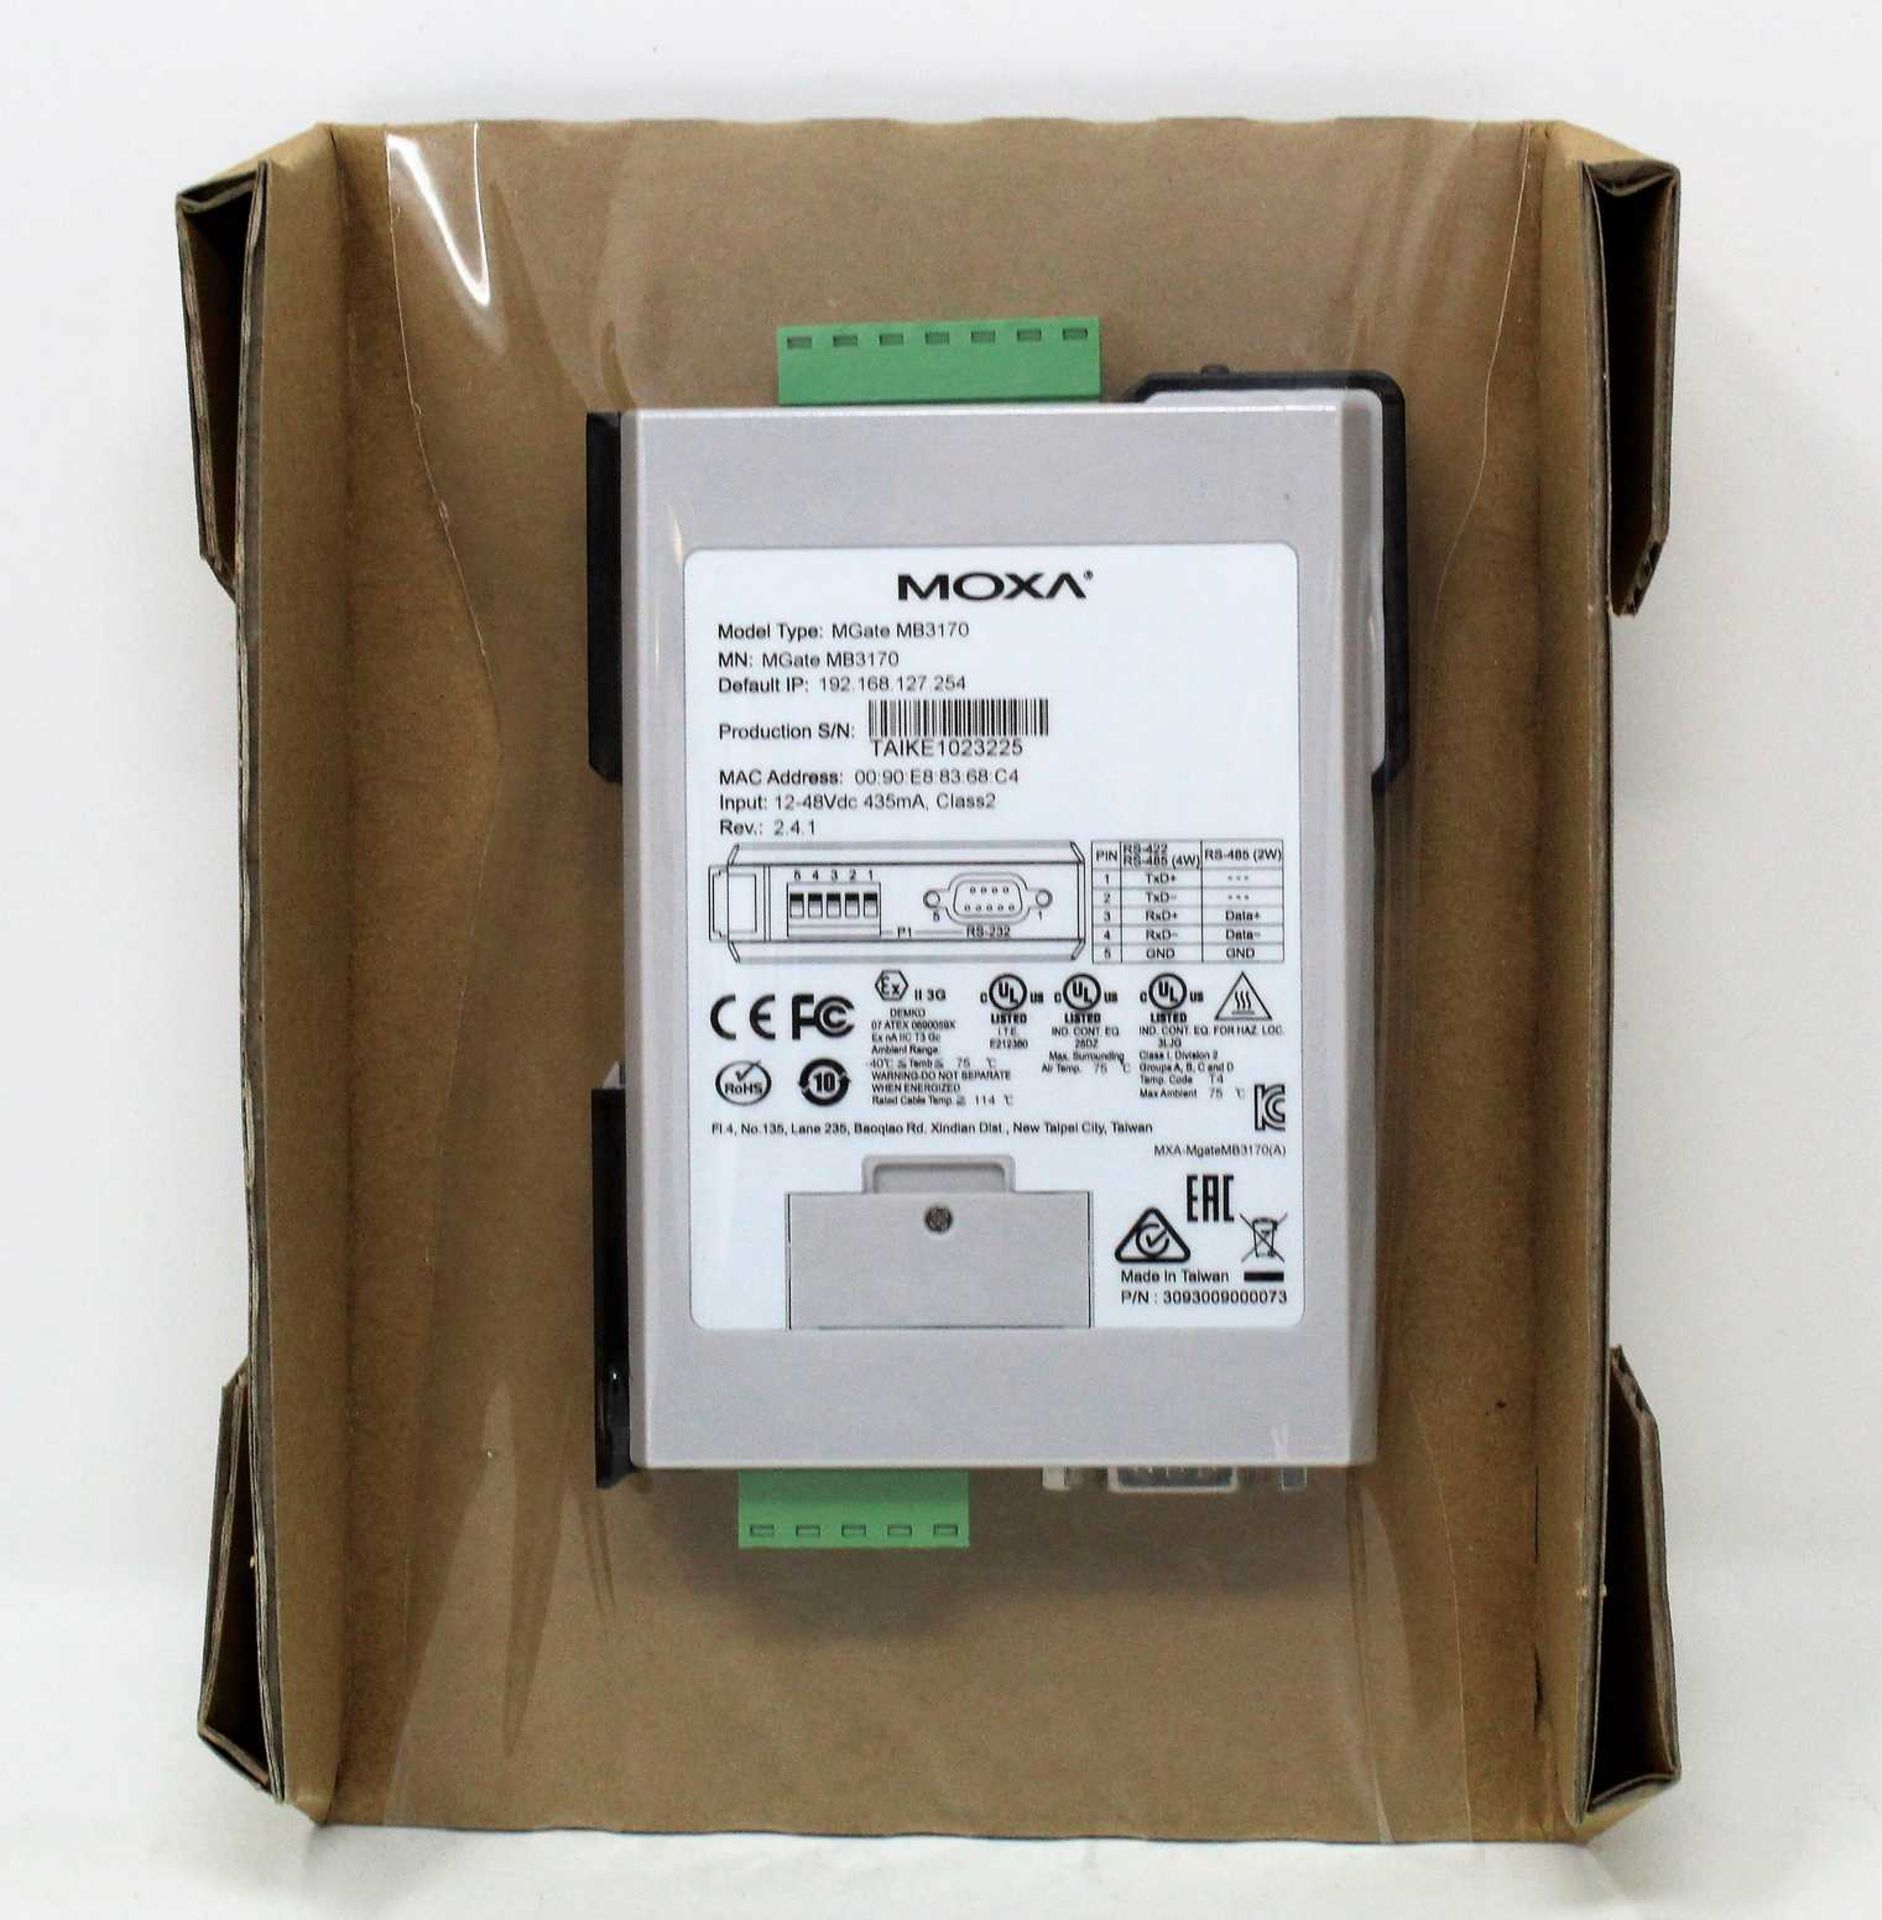 A boxed as new Moxa MGate MB3170 V2.4.1 Advanced Serial-to-Ethernet Modbus Gateway (P/N: